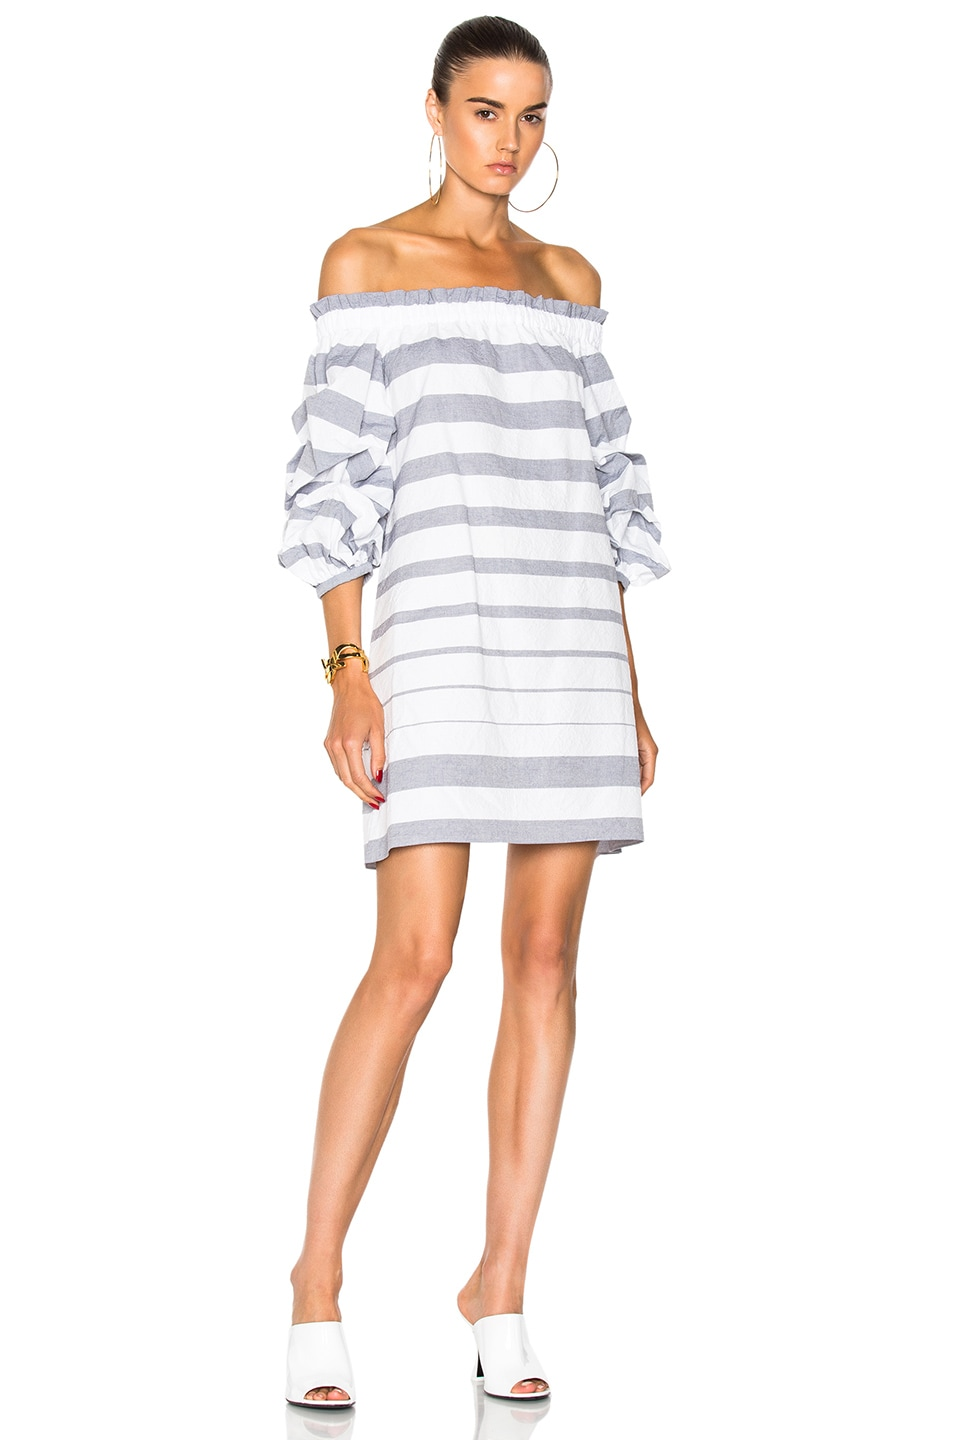 Image 1 of Alexis Olevetti Dress in Blue & White Stripes